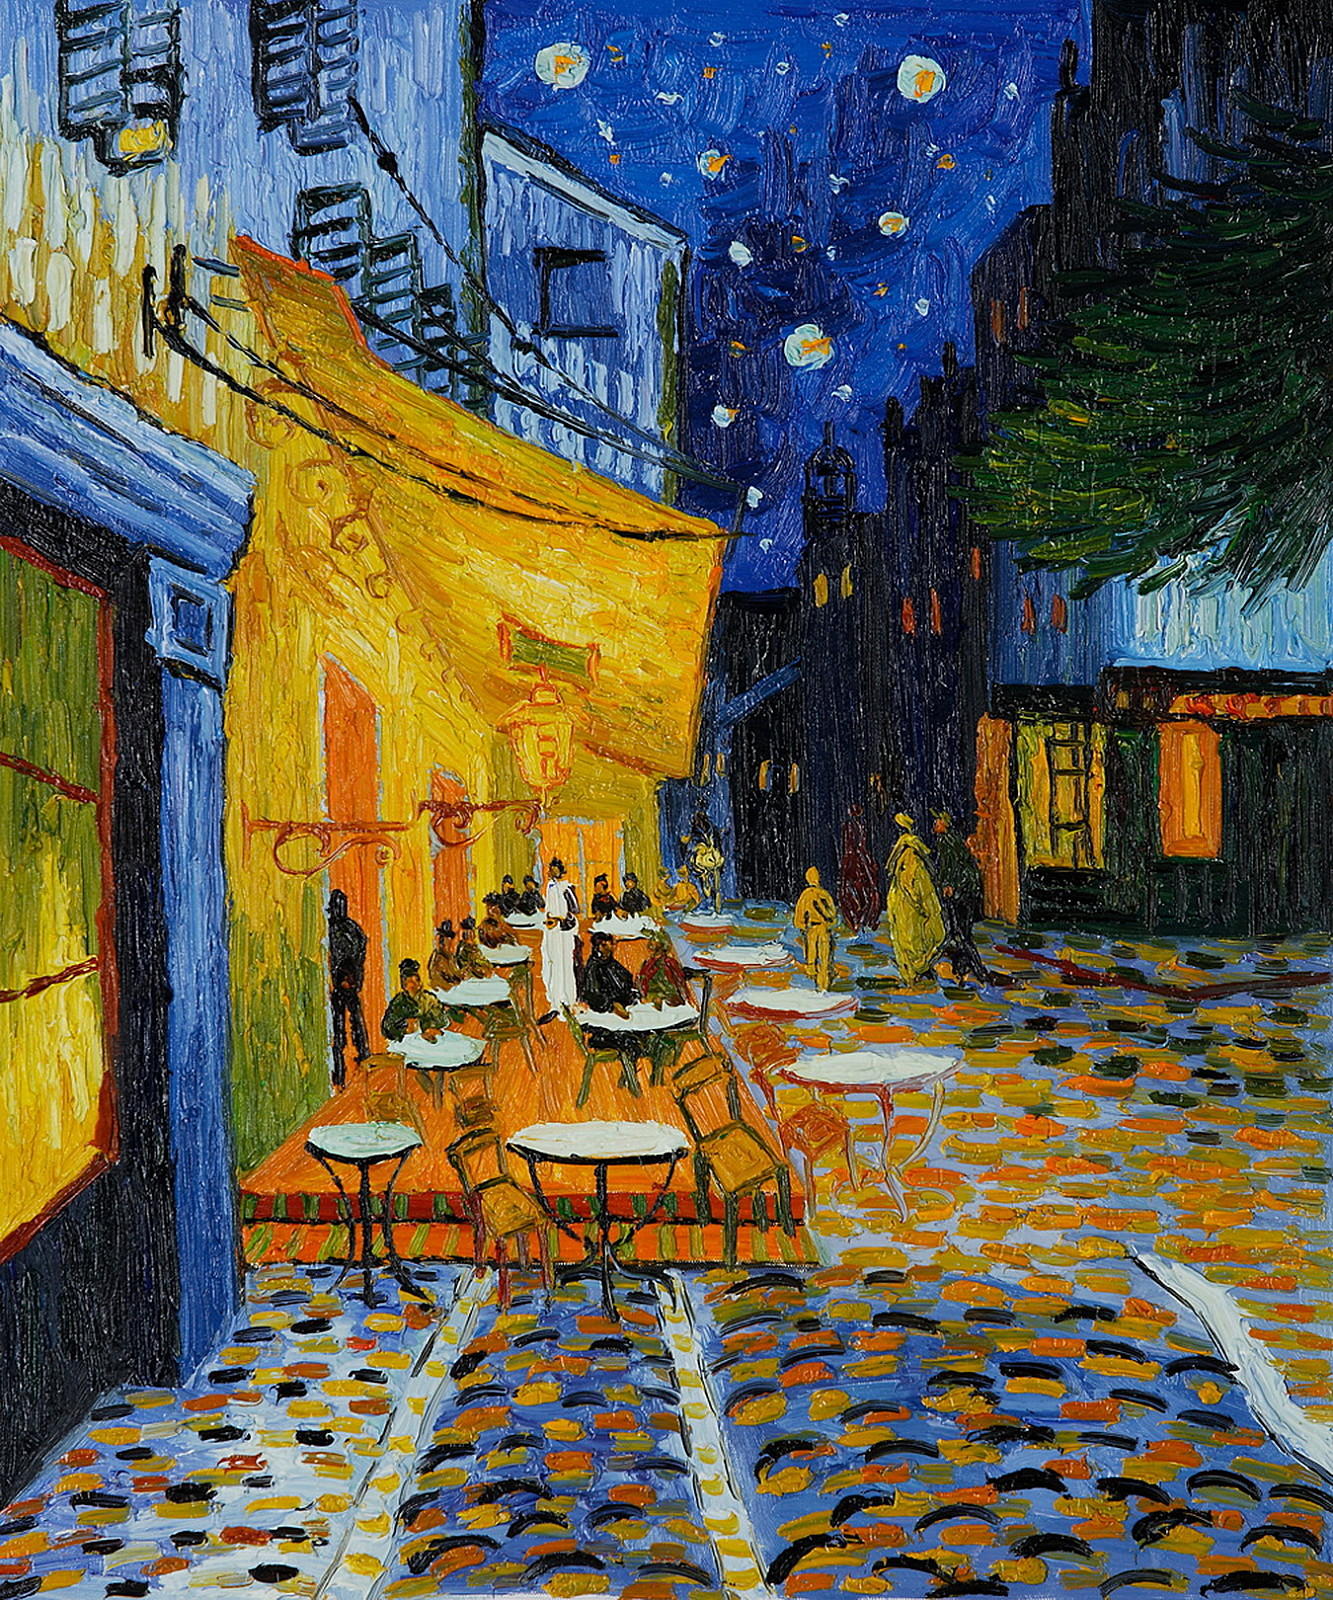 van gogh dark paintings - photo #47